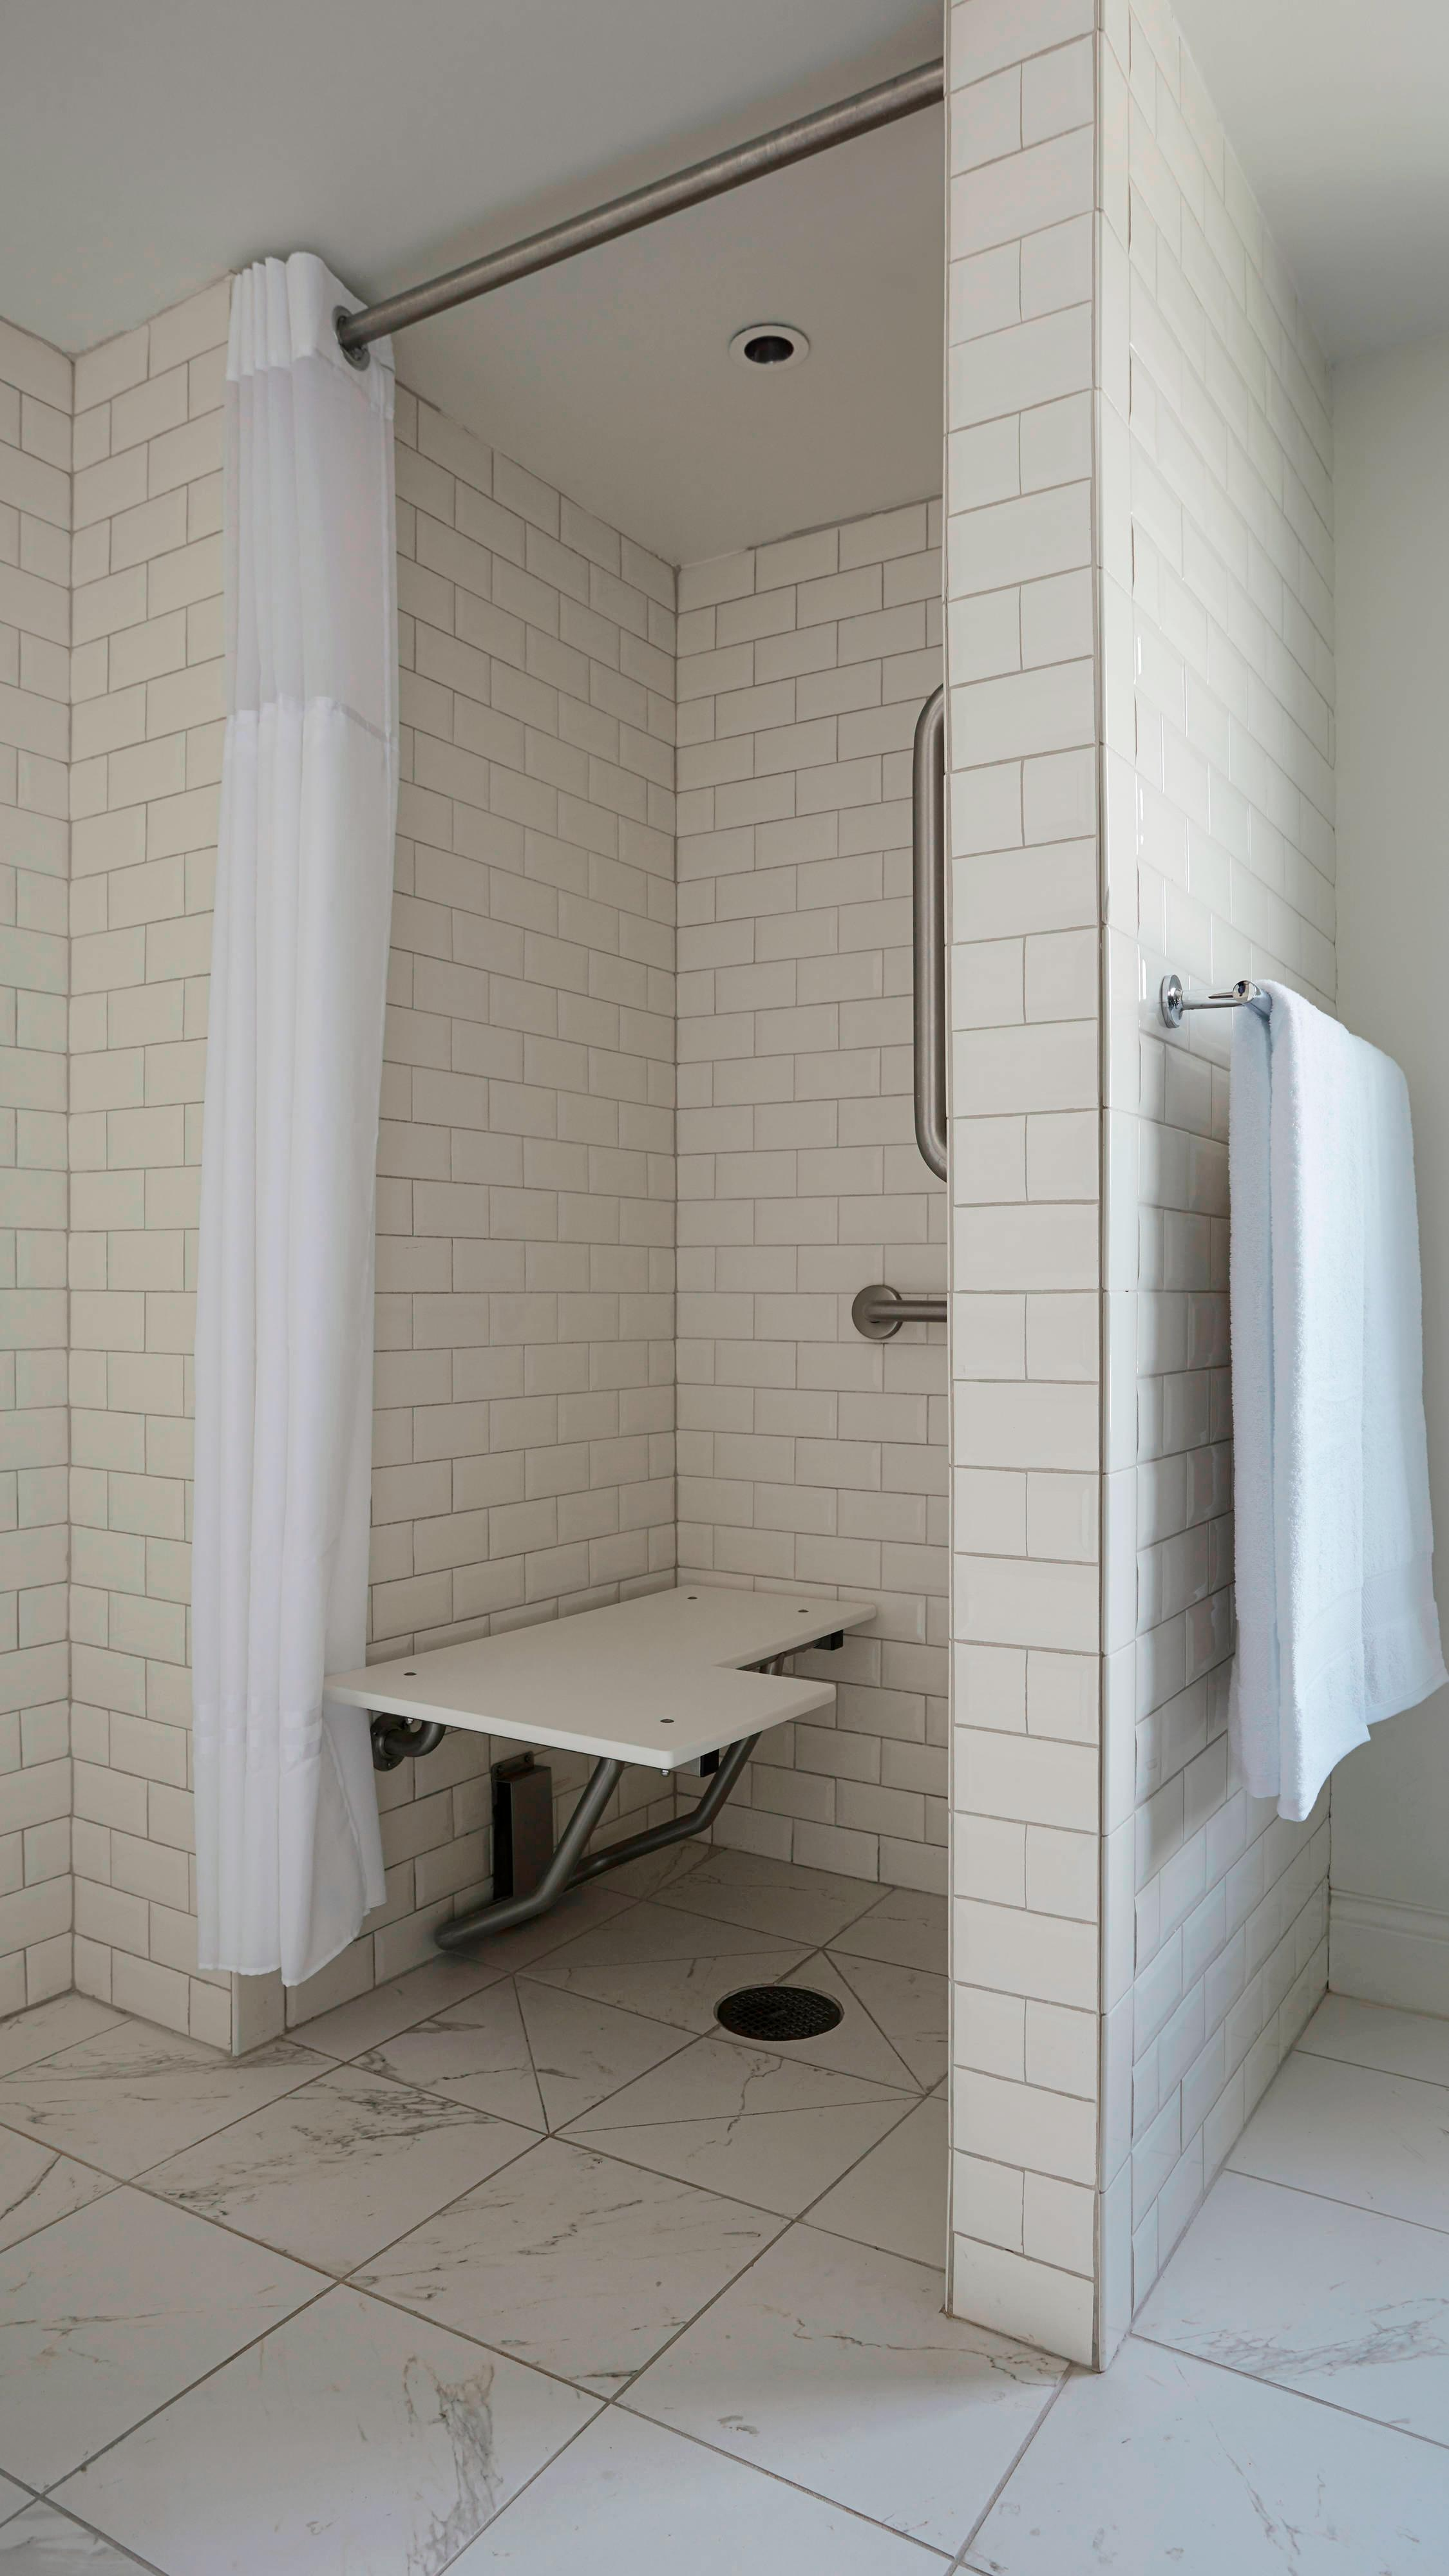 Accessible Guest Bathroom - Roll-in Shower